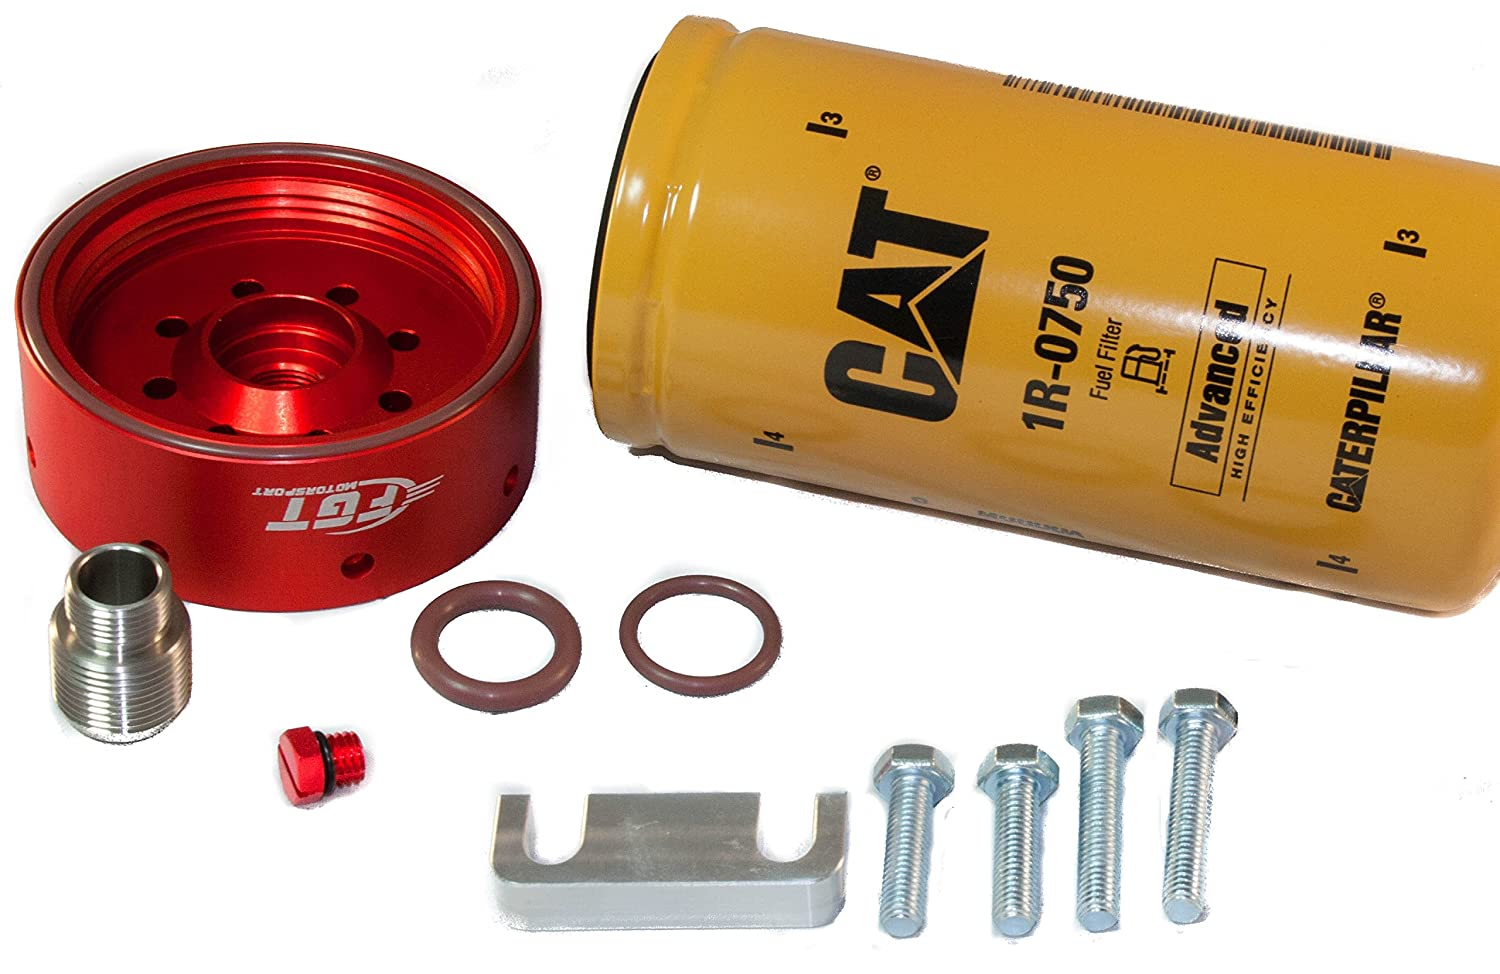 Cat Fuel Filter Adapter Conversion Kit For 2001 2016 1987 Toyota Truck Chevy Gmc Duramax Includes Bonus Billet Bleeder By Fgt Motorsport Automotive